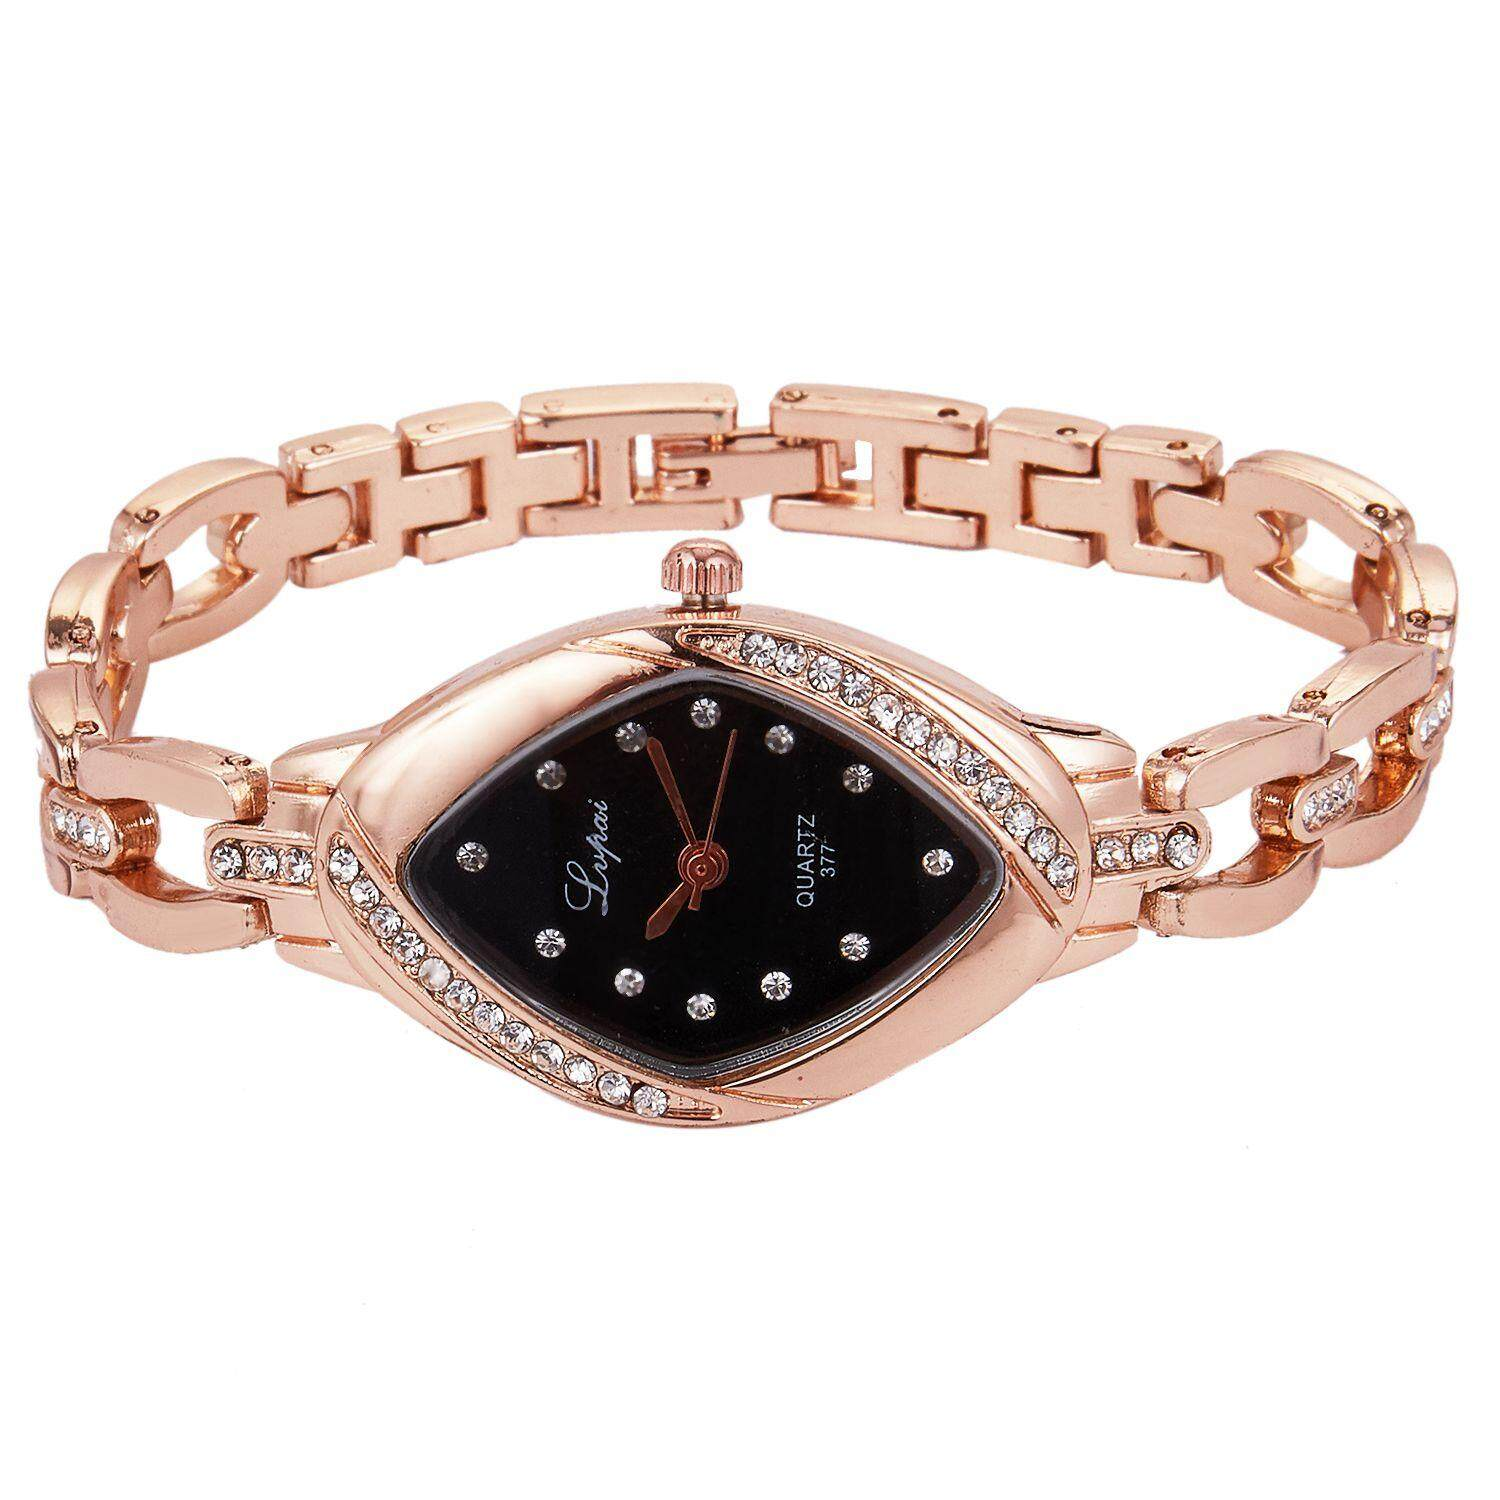 Lvpai Dropshipping Luxury Ladies Bangle Watches for Women Rhombus Cheap Gold Rhinestone Watch Dress Quartz Wrist Clock Watches, P128 rose gold black Malaysia